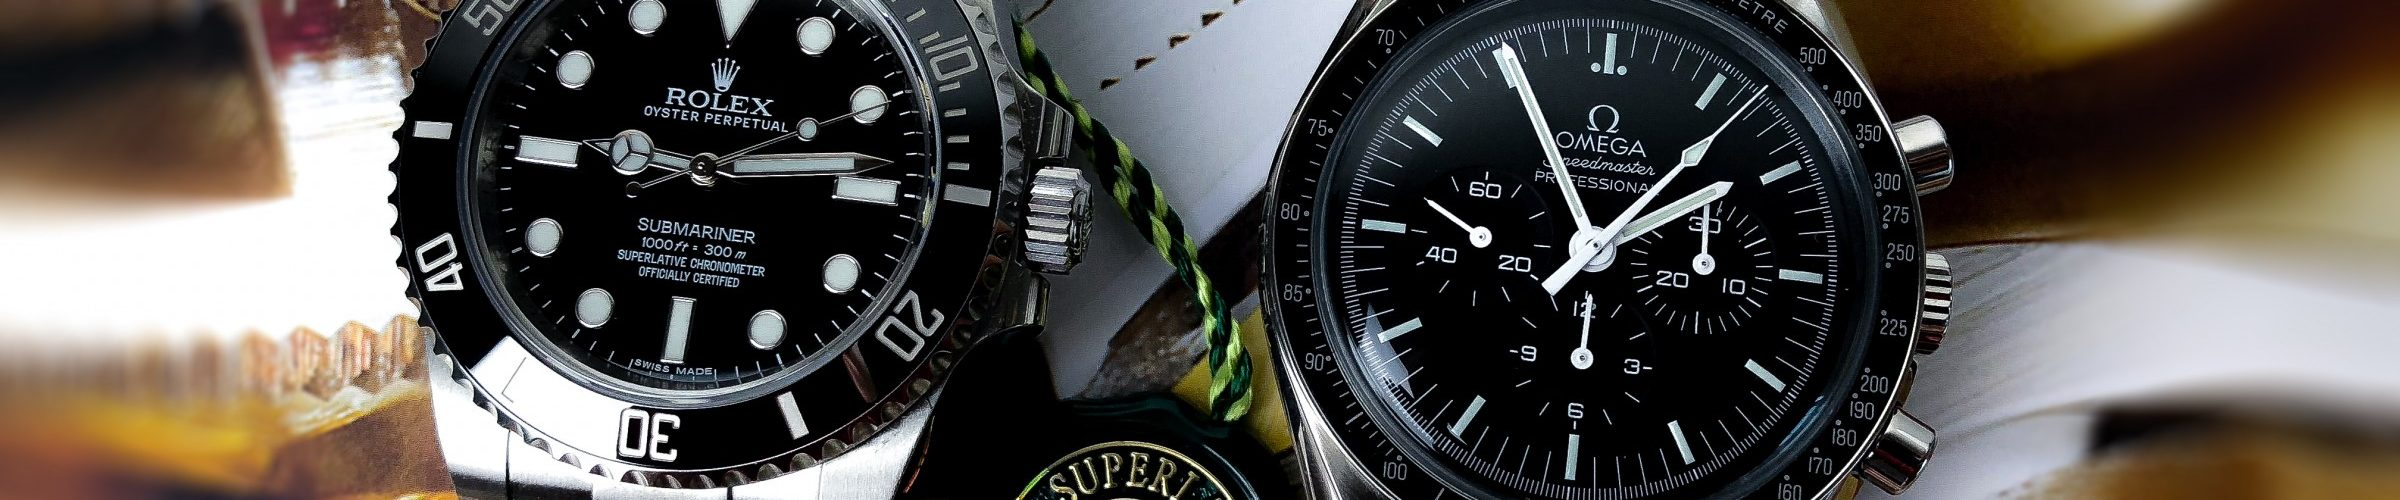 Chronometer vs. Chronograph_Omega Moonwatch Rolex Submariner